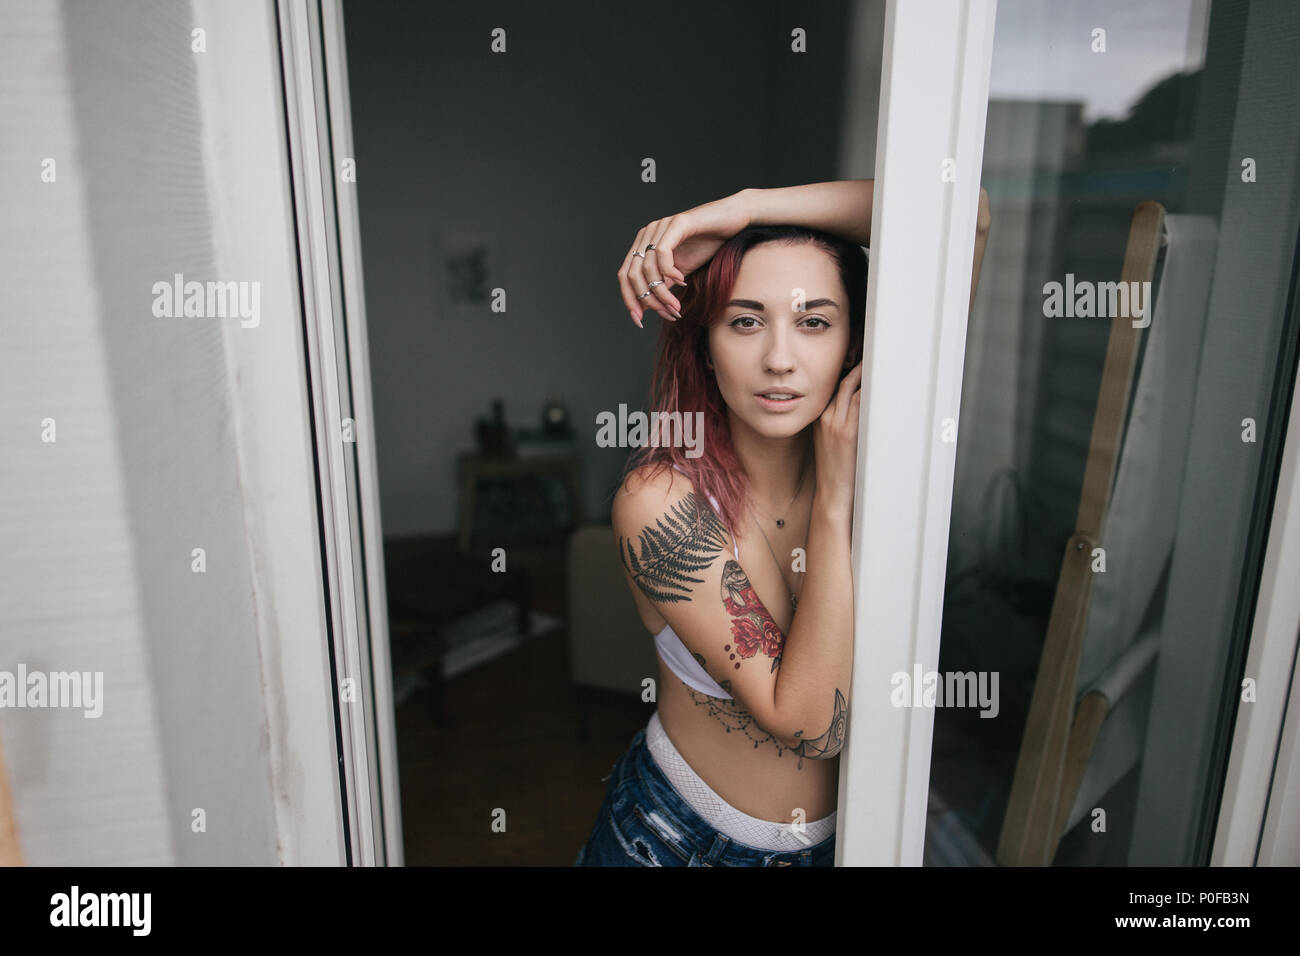 d31e2f7596b beautiful tender young woman in bra and denim shorts looking at camera  through open window -